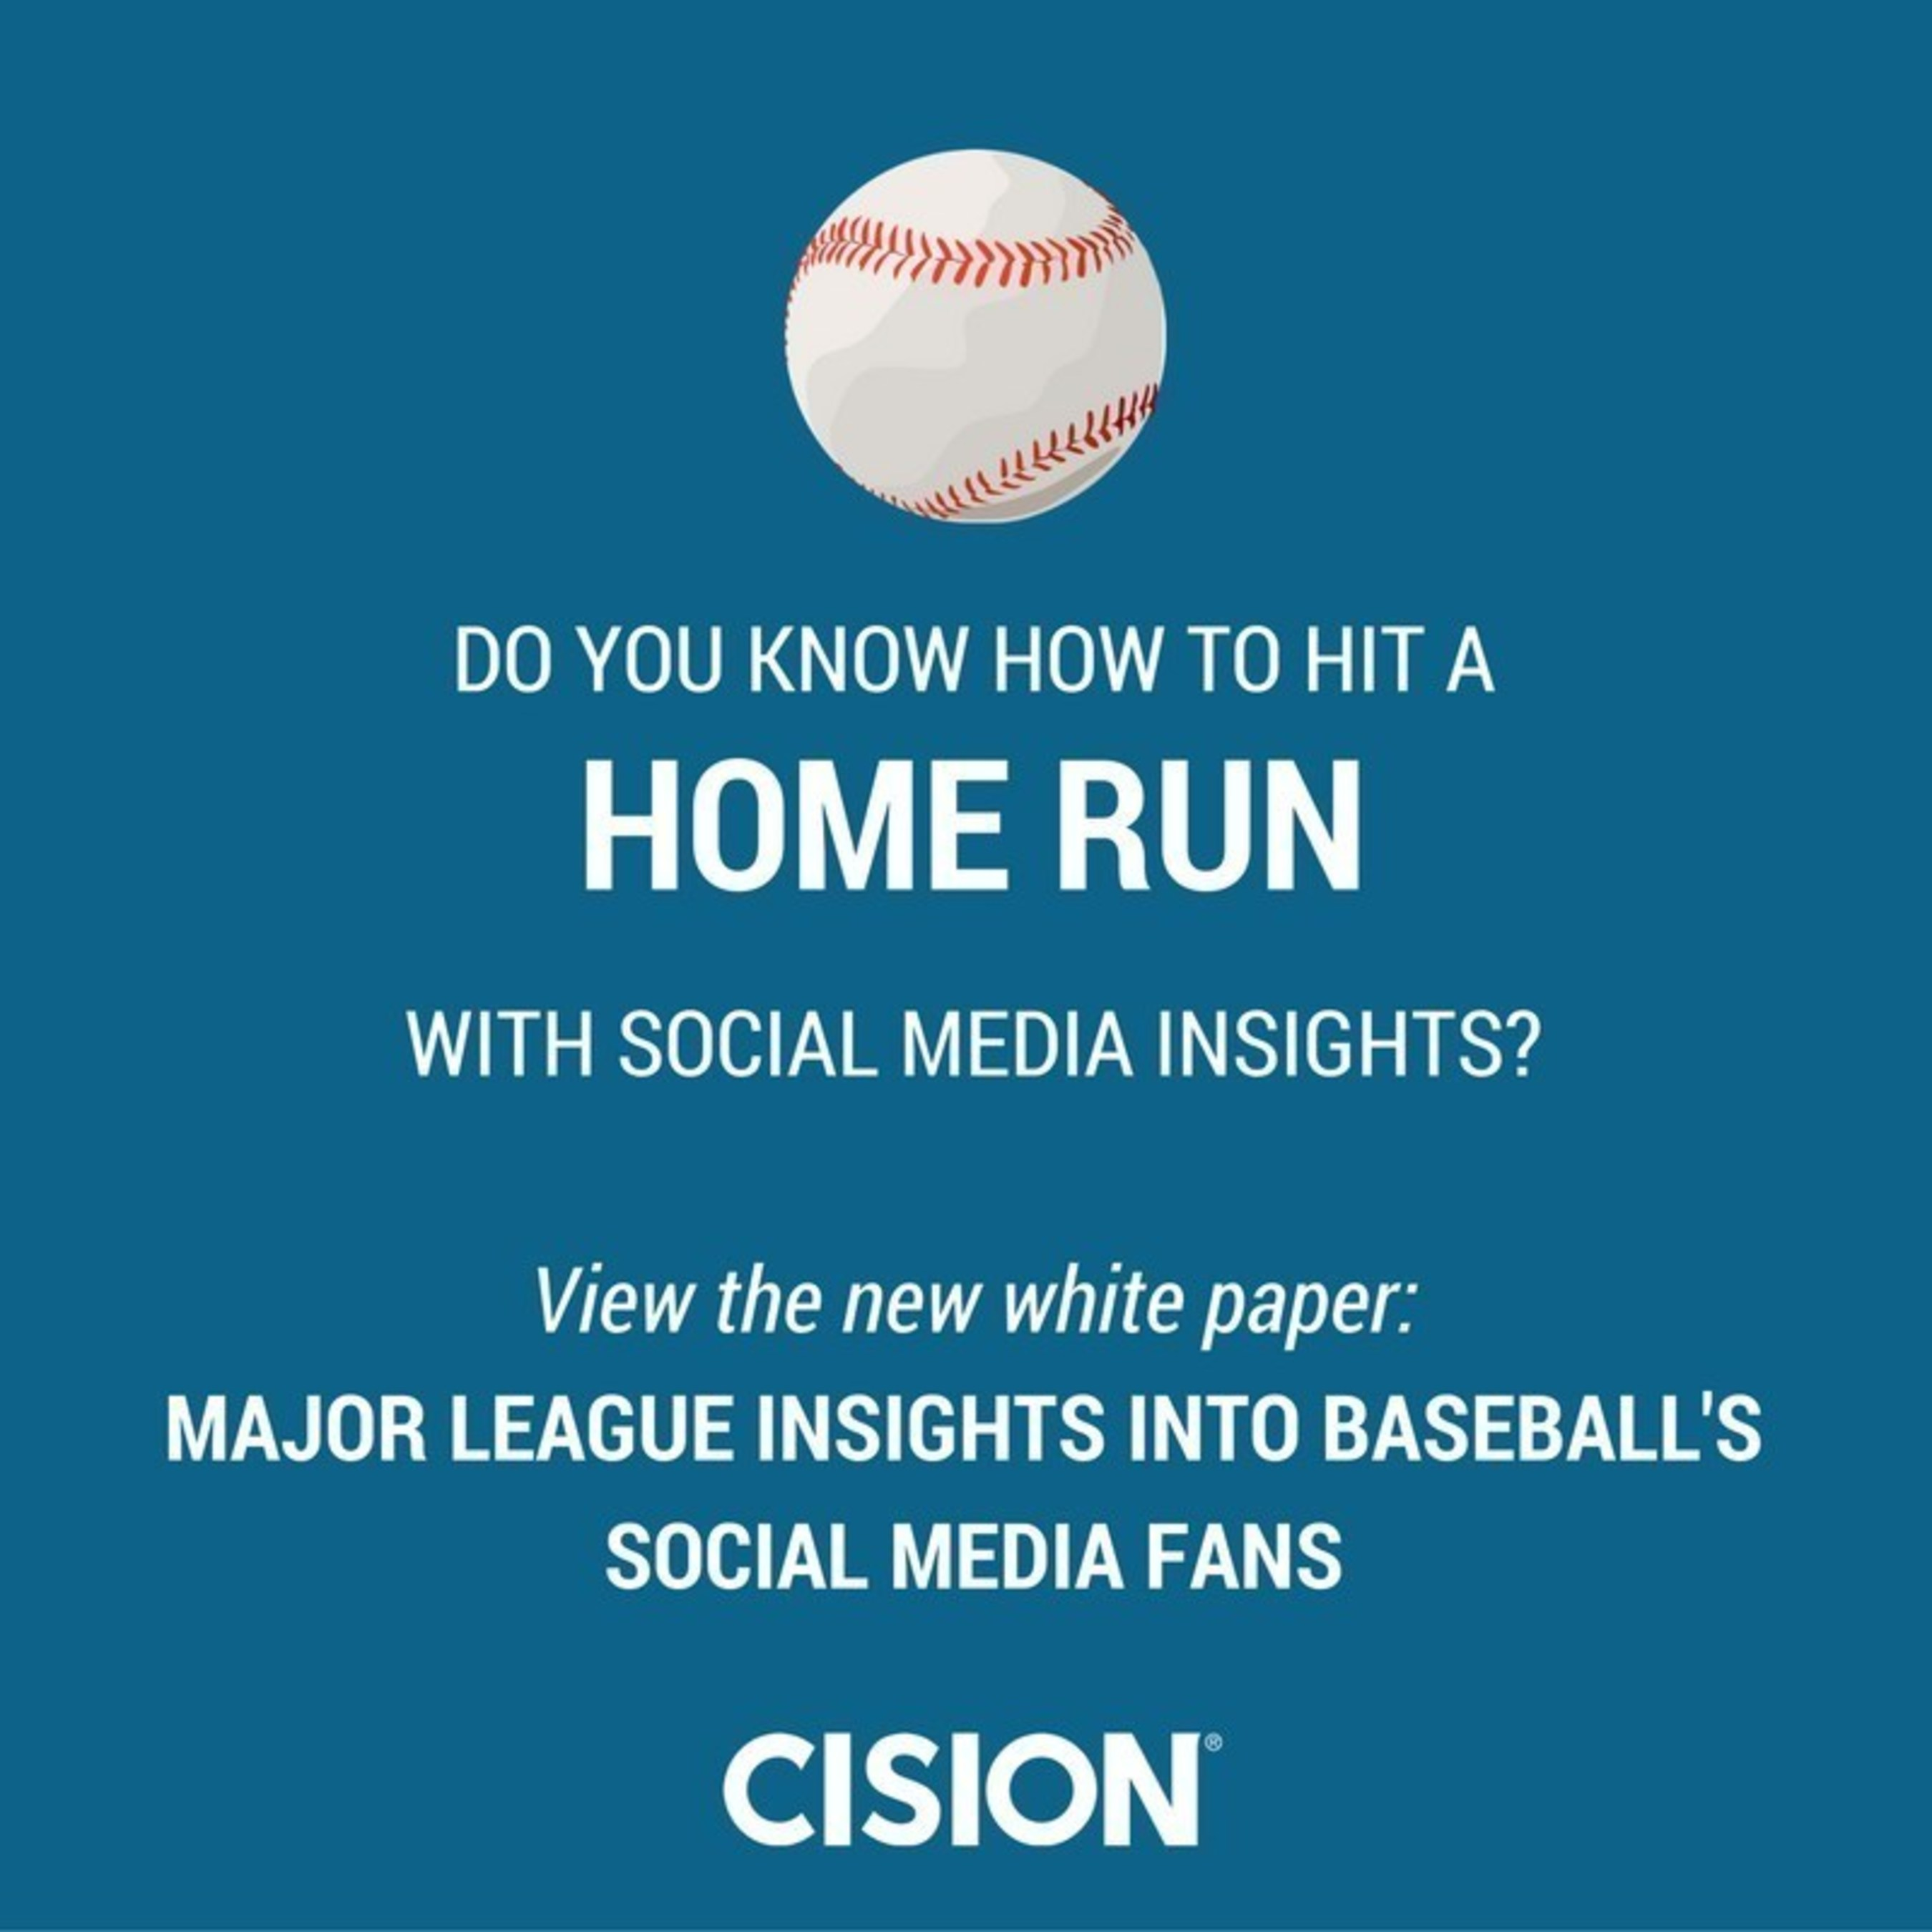 How Communications Champions Can Score Major League Insights